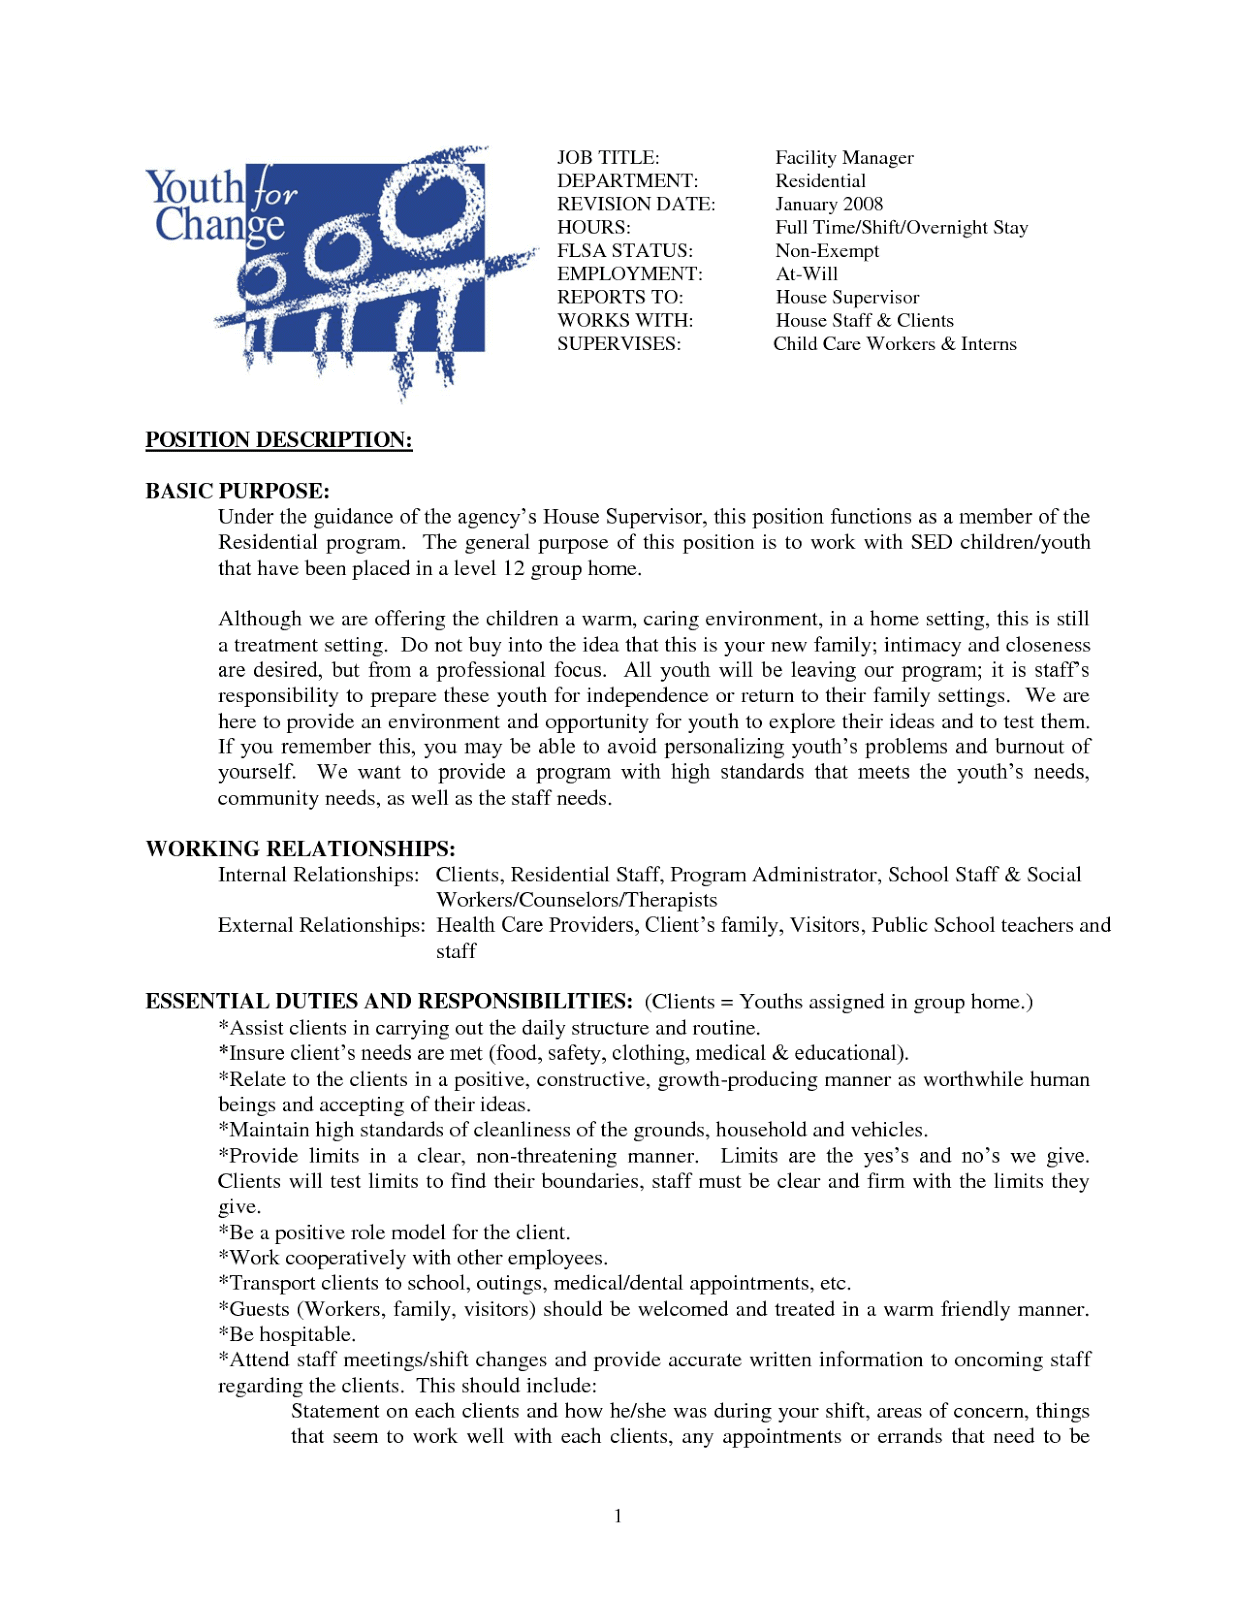 how to make resume for cleaning job sample service resume how to make resume for cleaning job 6 words that make your resume suck squawkfox house